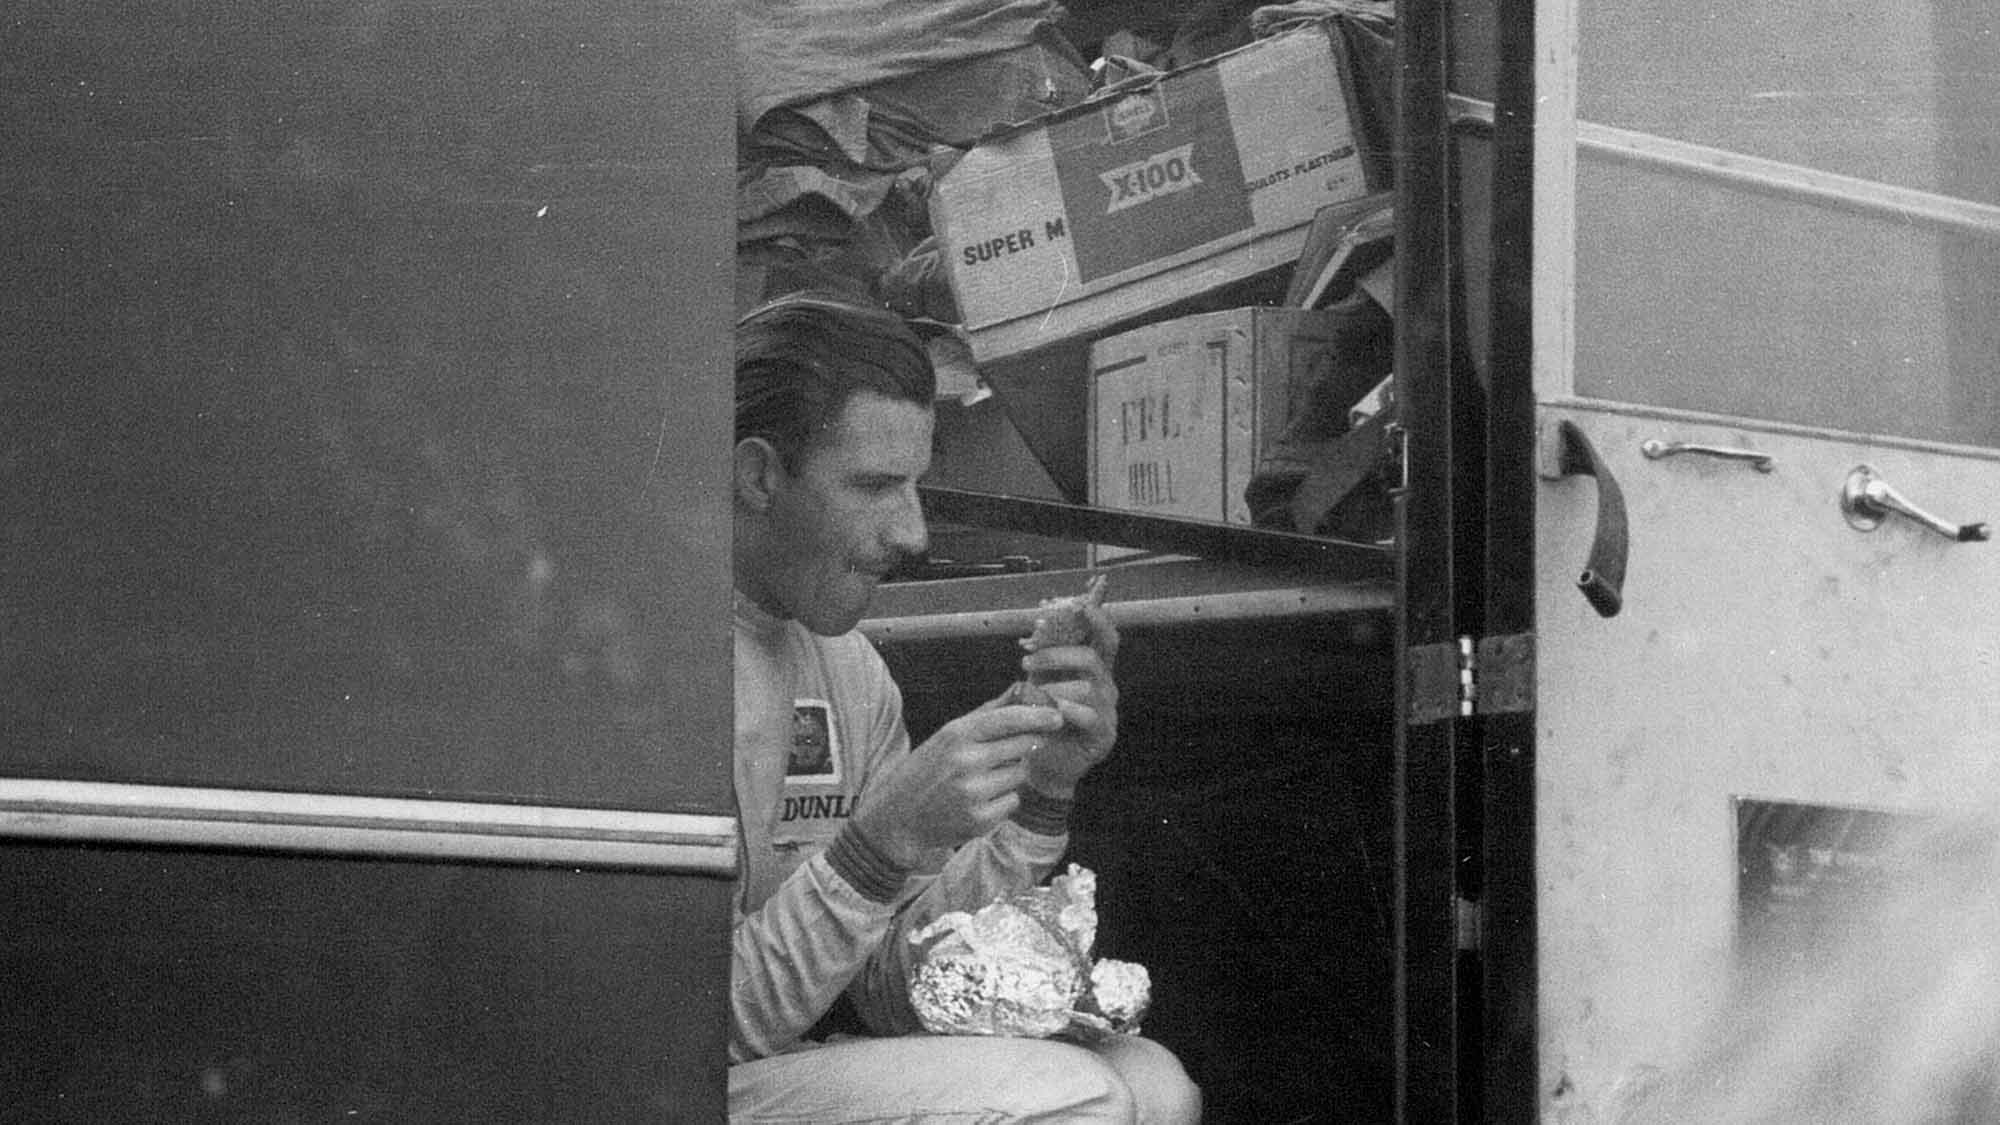 Graham Hill in the Maranello Concessionaires truck at Goodwood for the 1964 Sussex Trophy